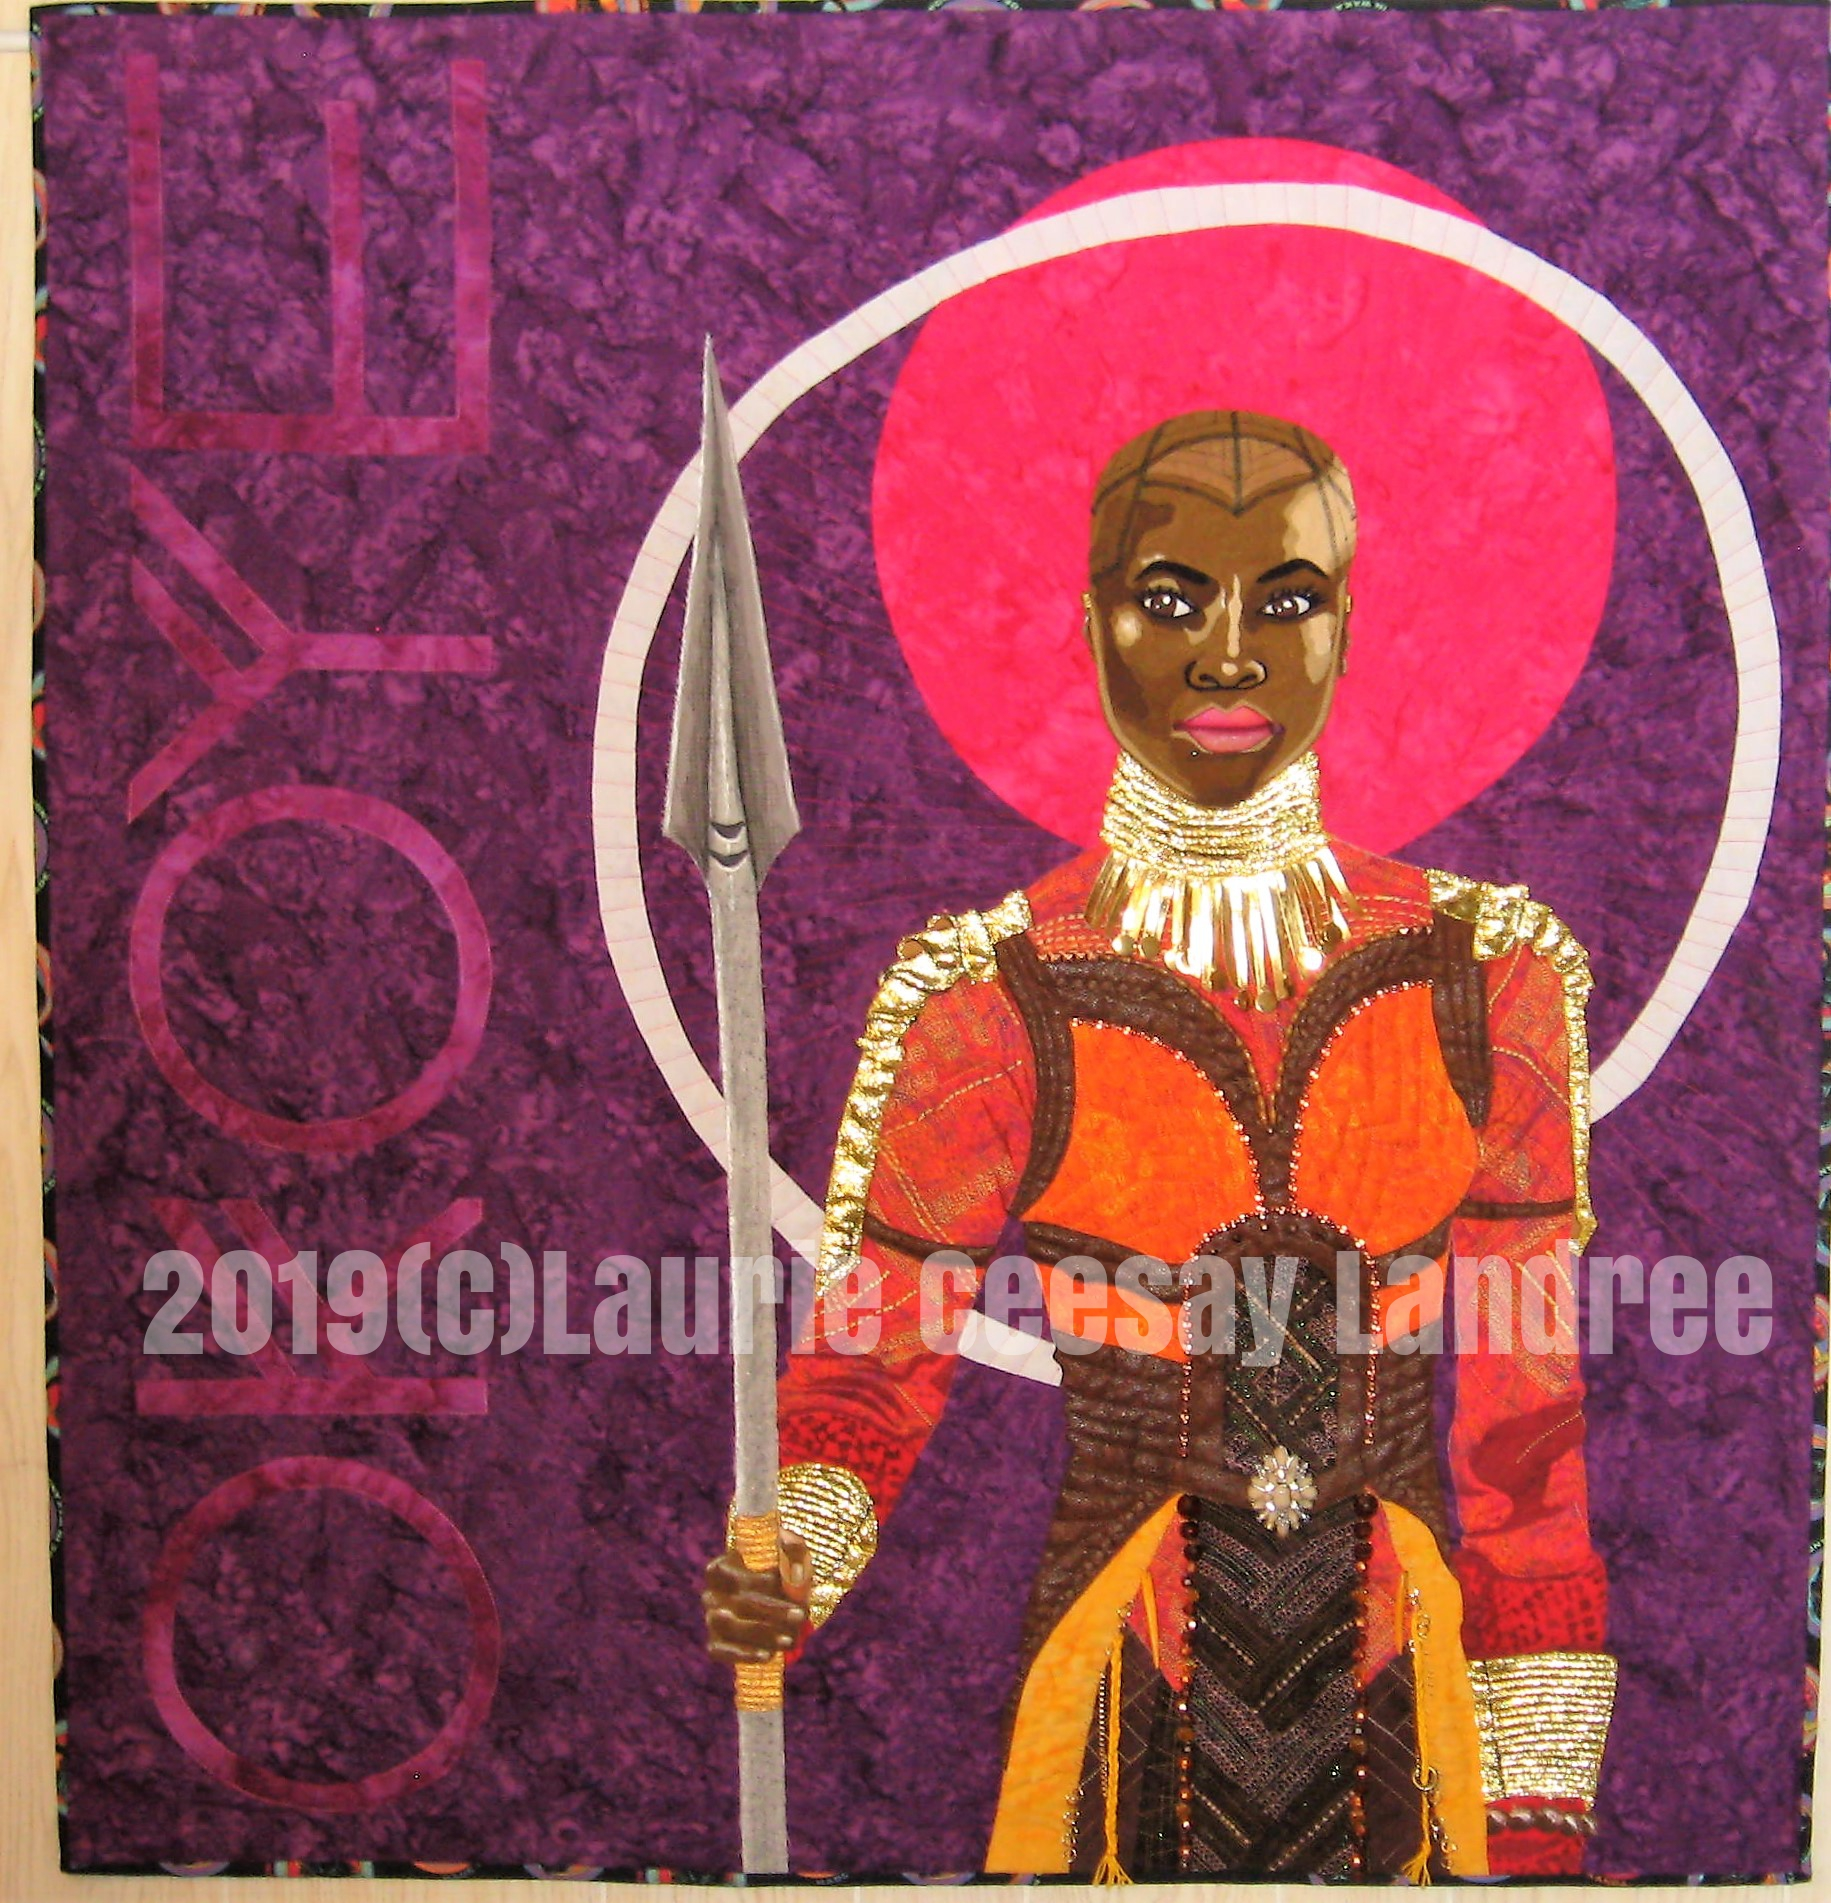 This quilt is called Okoye: Wakanda Warrior and I made it for the2019  International Quilt Festival's quilt contest called Quilted Comics & Sci Fi. Comic books, Comic Con, Star Wars, Star Trek and Games of Thrones are many of the possible options. When I watched the 2018 movie Black Panther I was in love with the female actresses and the powerful roles they played, their fantastic costumes and that bald head and beautiful face of Okoye the General of the Dora Milaje who project the Black Panther. I loved how women ran the military army and could still be beautiful! I also loved that Okoye carried a spear! When I learned of this quilt contest I knew this was the subject matter.   Black Panther began as a comic book so I felt I was safe choosing her.   I researched images from Pinterest and found an image I liked. I did not cheat and print the design from the internet. I drew the design  beginning on Sunday January 27, 2019 at a quilt retreat and realized the costume was very complicated. It was difficult to draw but it was so awesome I needed to continue and not wimp out on the detail.